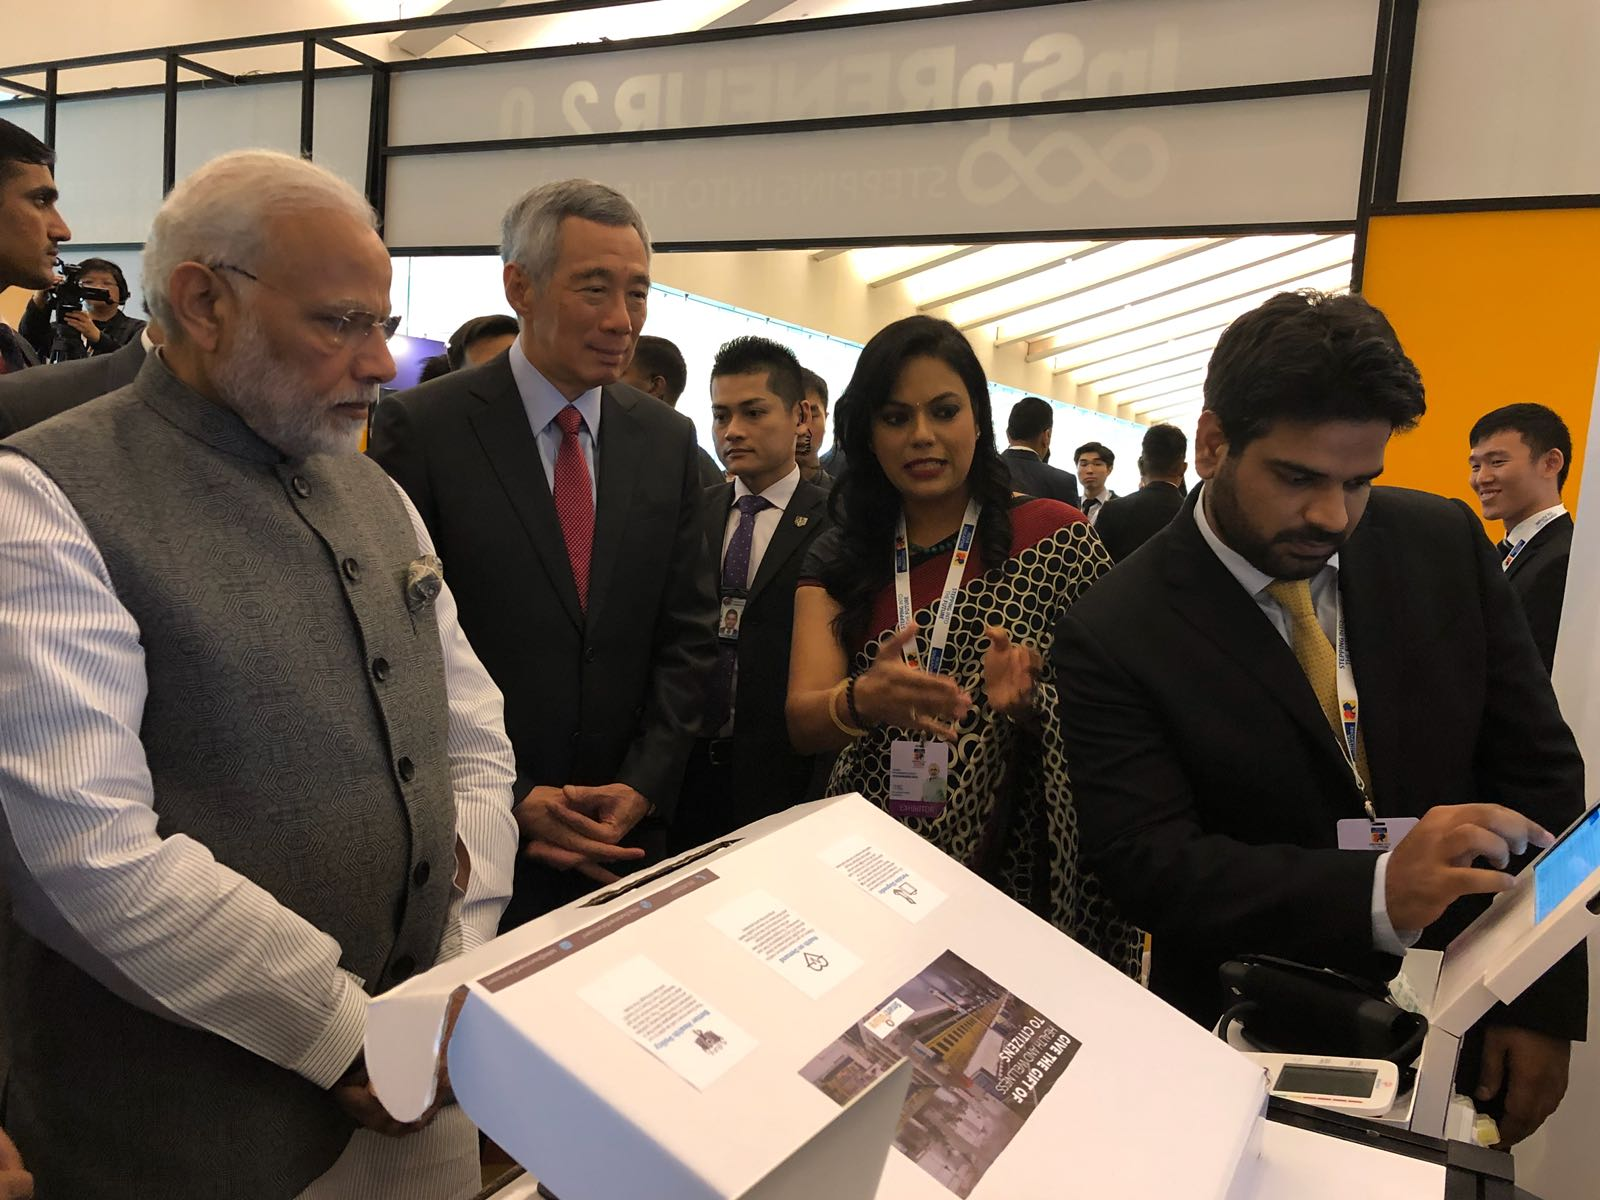 IoT Healthcare App Solutions by Let's Nurture for a client in Singapore gets rave reviews from PM of India at an Exhibition in Singapore